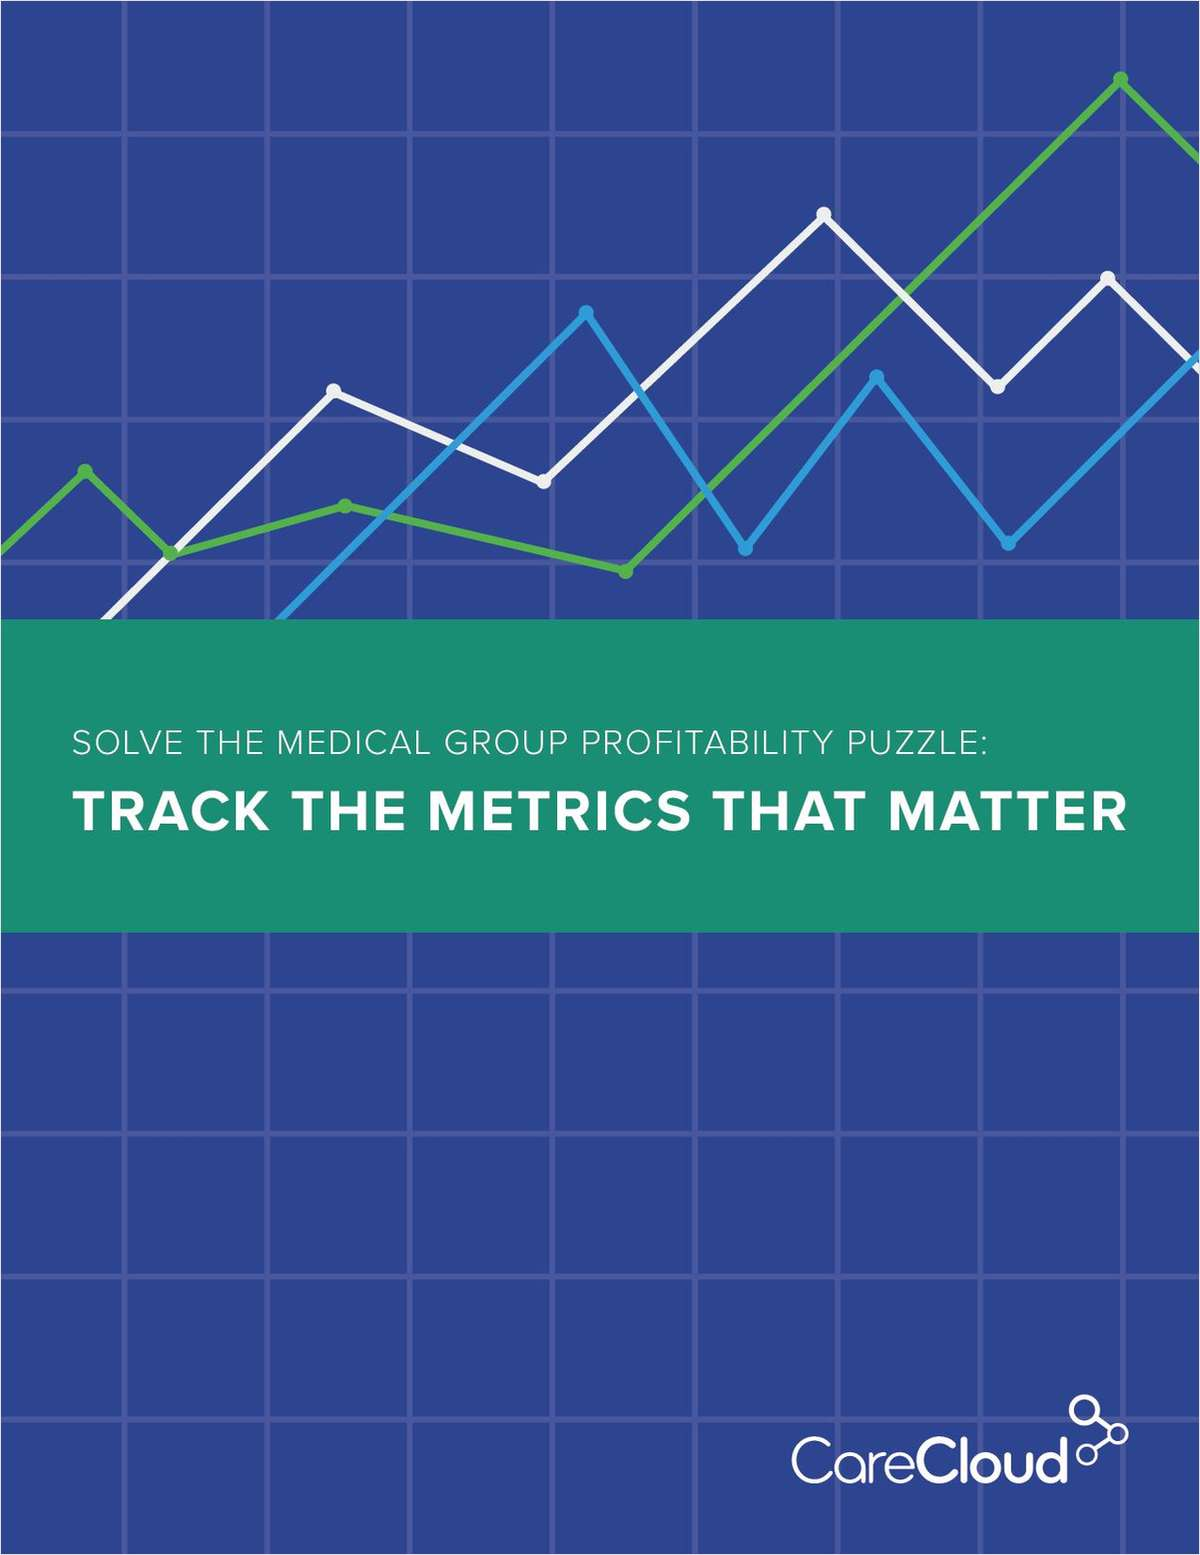 Solve the Medical Group Profitability Puzzle: Track the Metrics That Matter